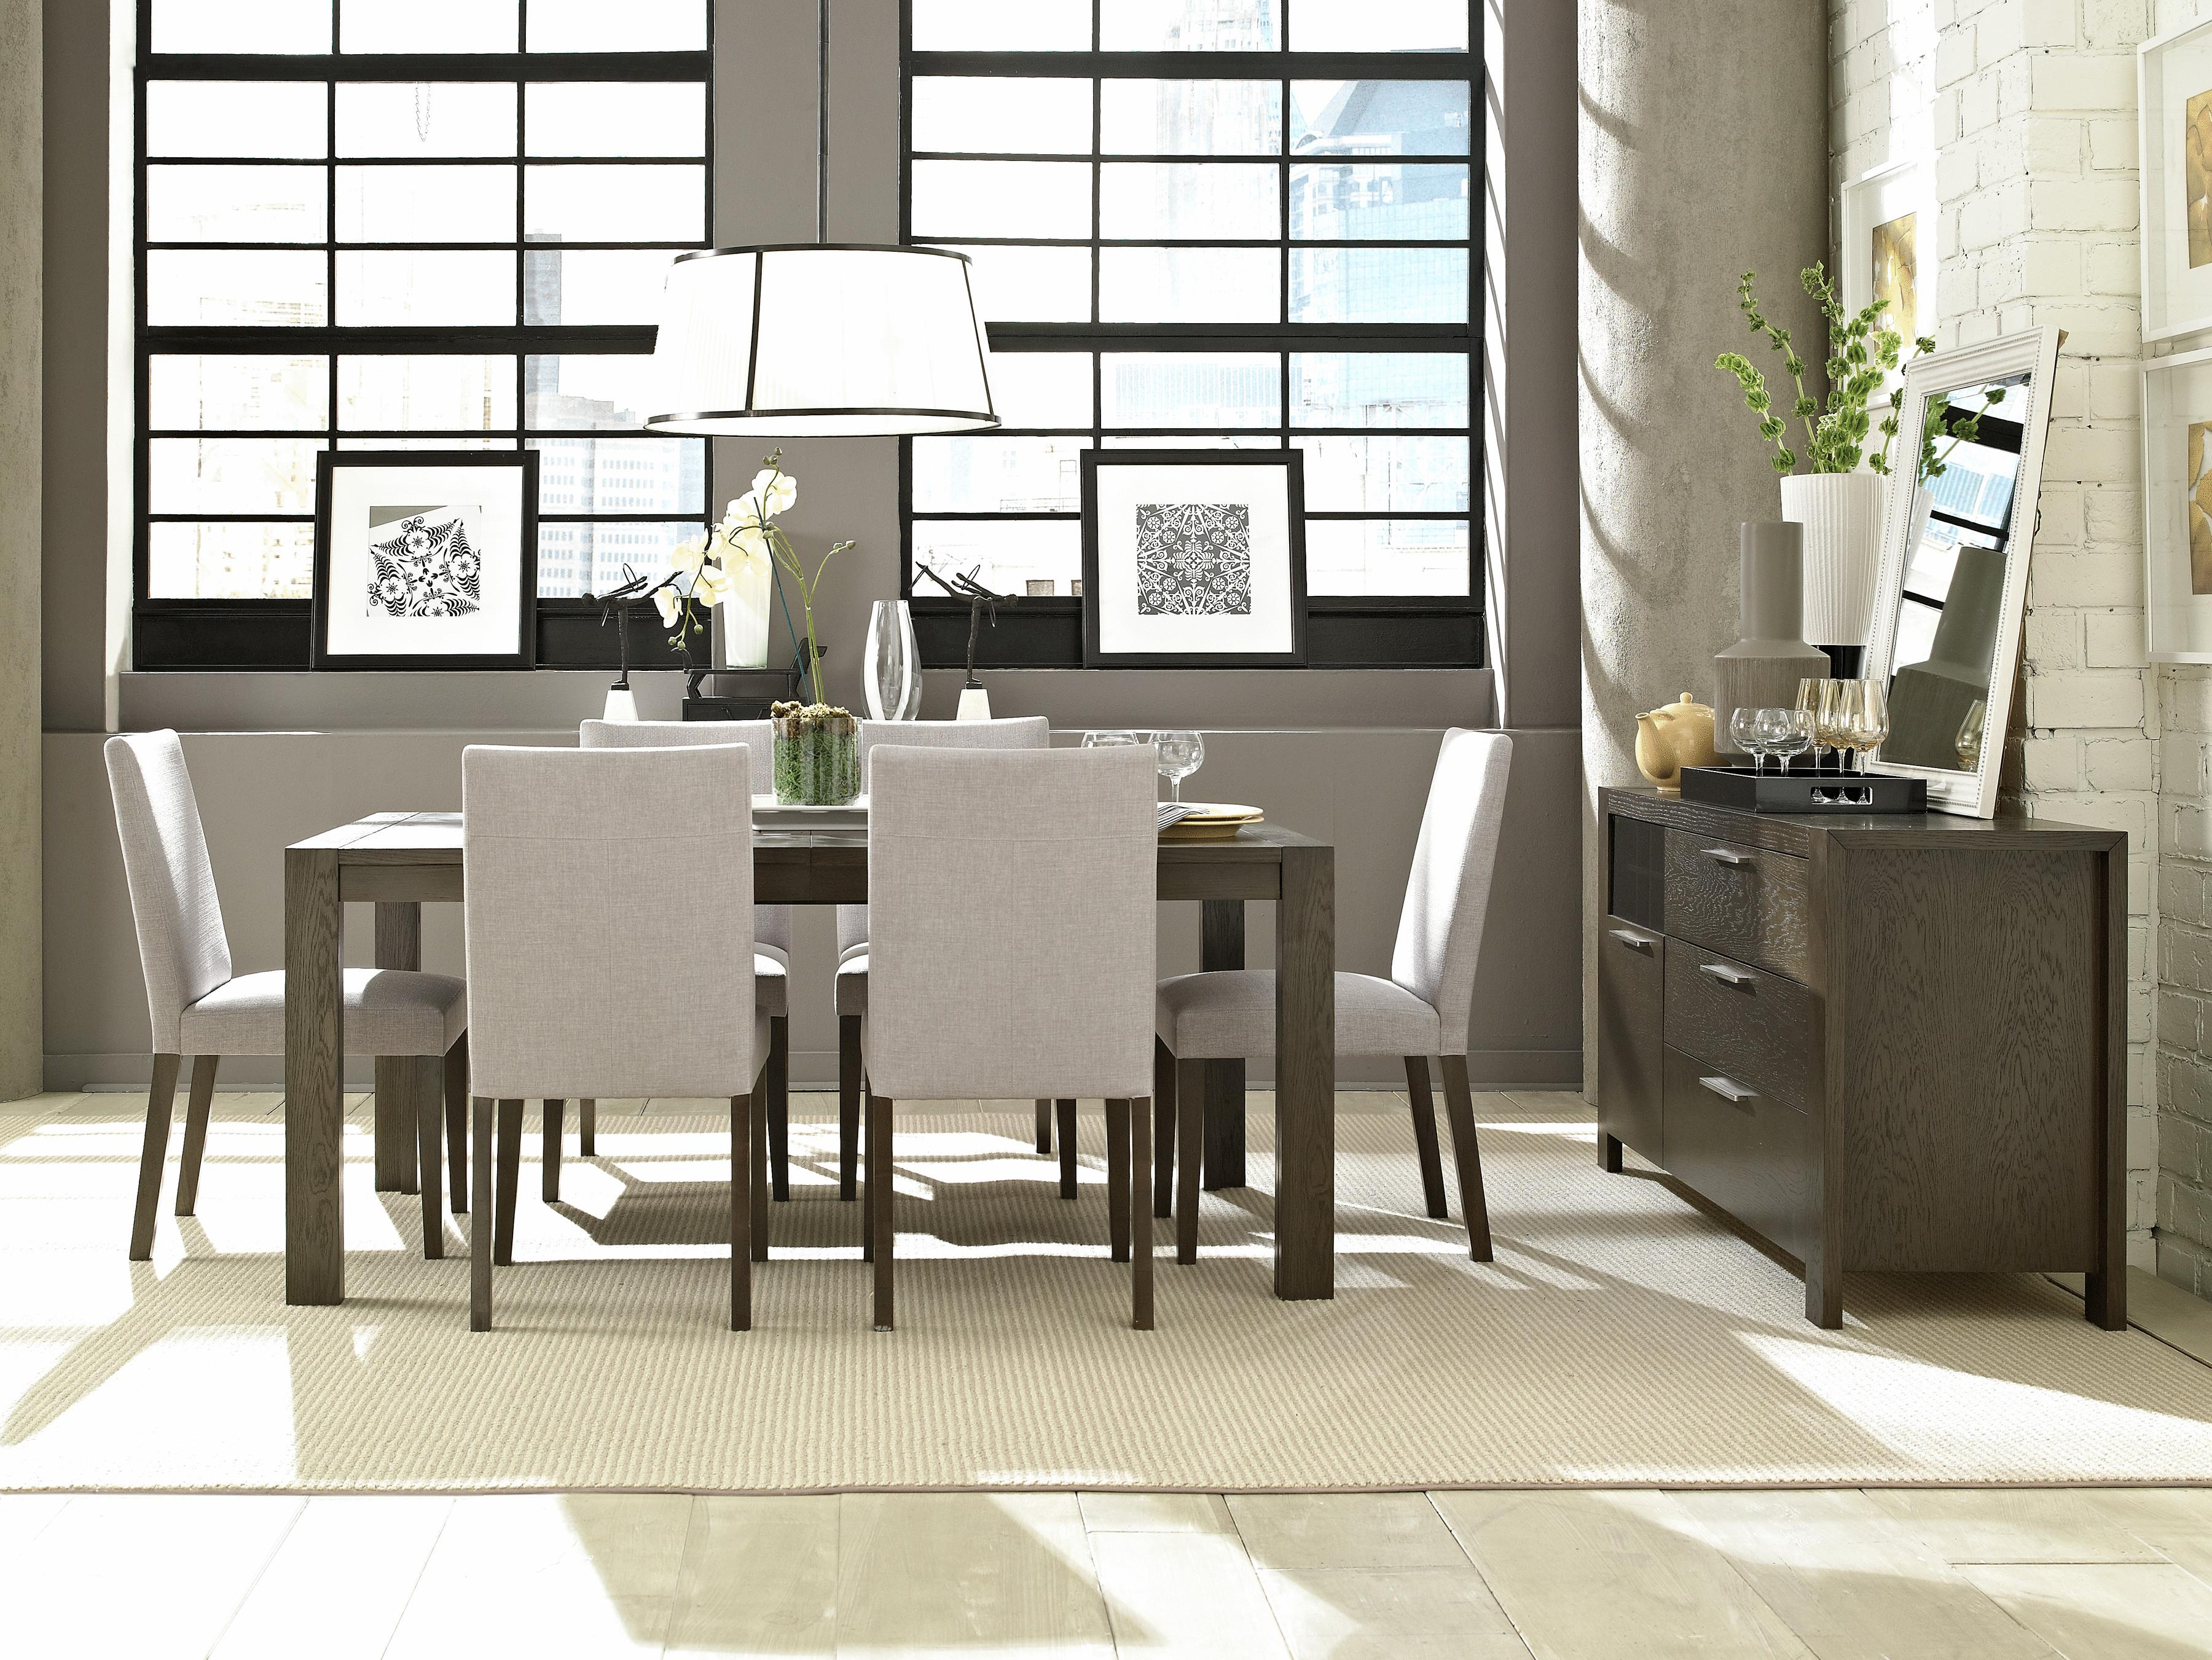 Casana Montreal Table and Chair Set   Stoney Creek Furniture   Dining 7  or  more  Piece Set Toronto  Hamilton  Vaughan  Stoney Creek  Ontario. Casana Montreal Table and Chair Set   Stoney Creek Furniture